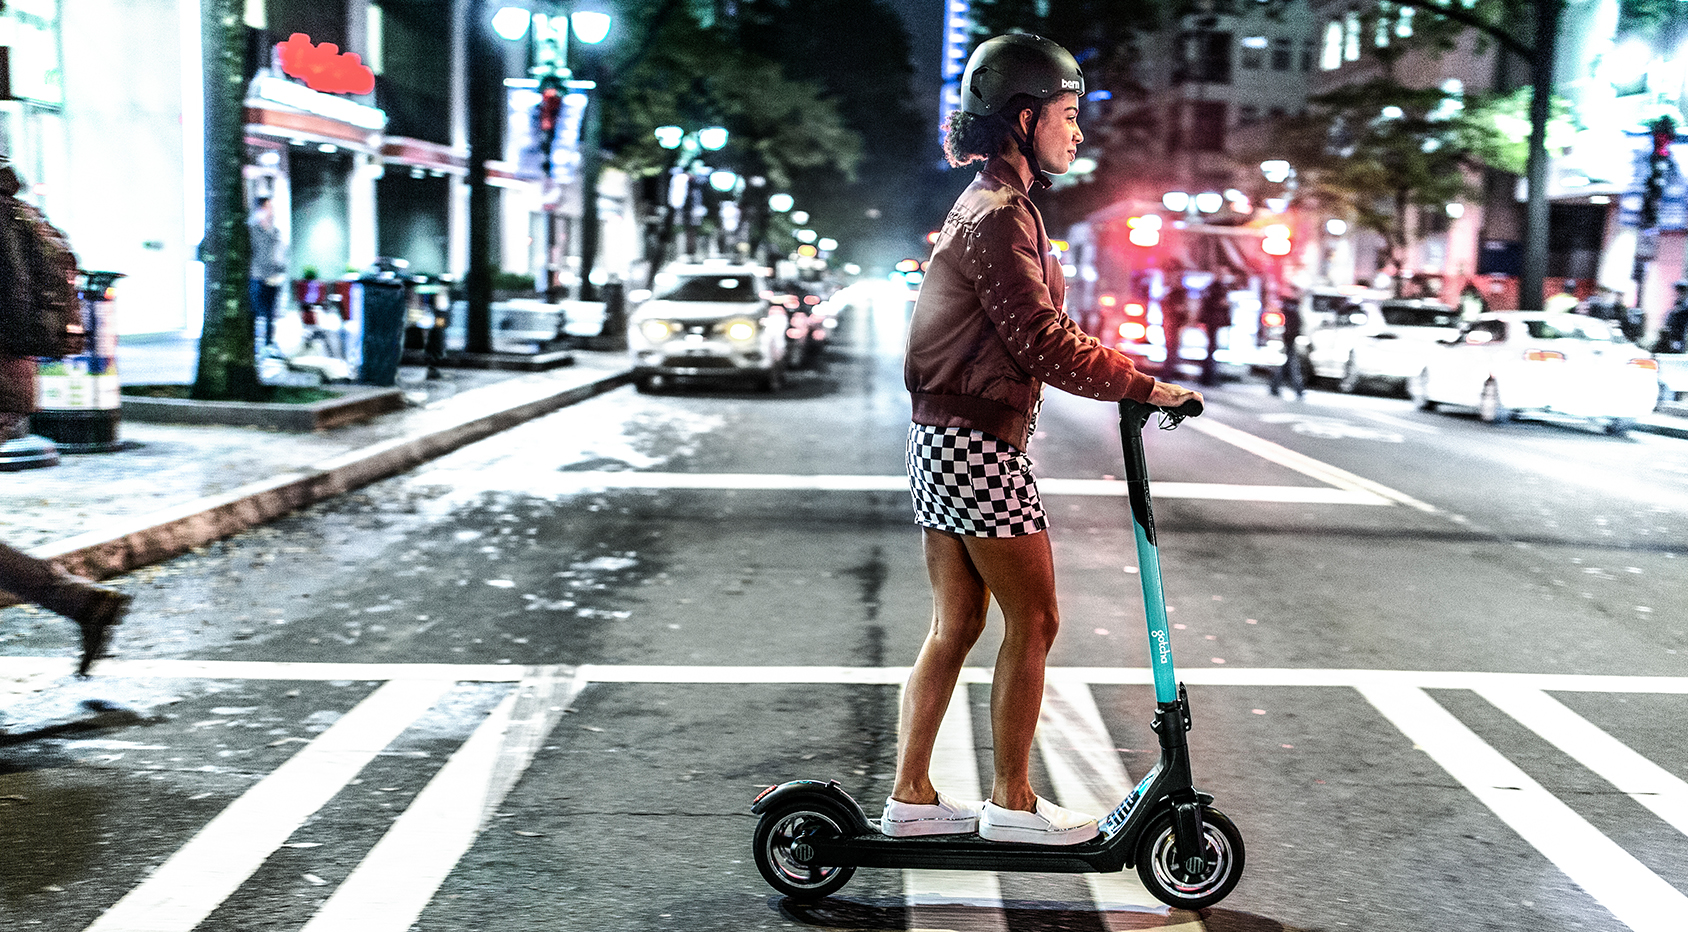 Young woman riding scooter